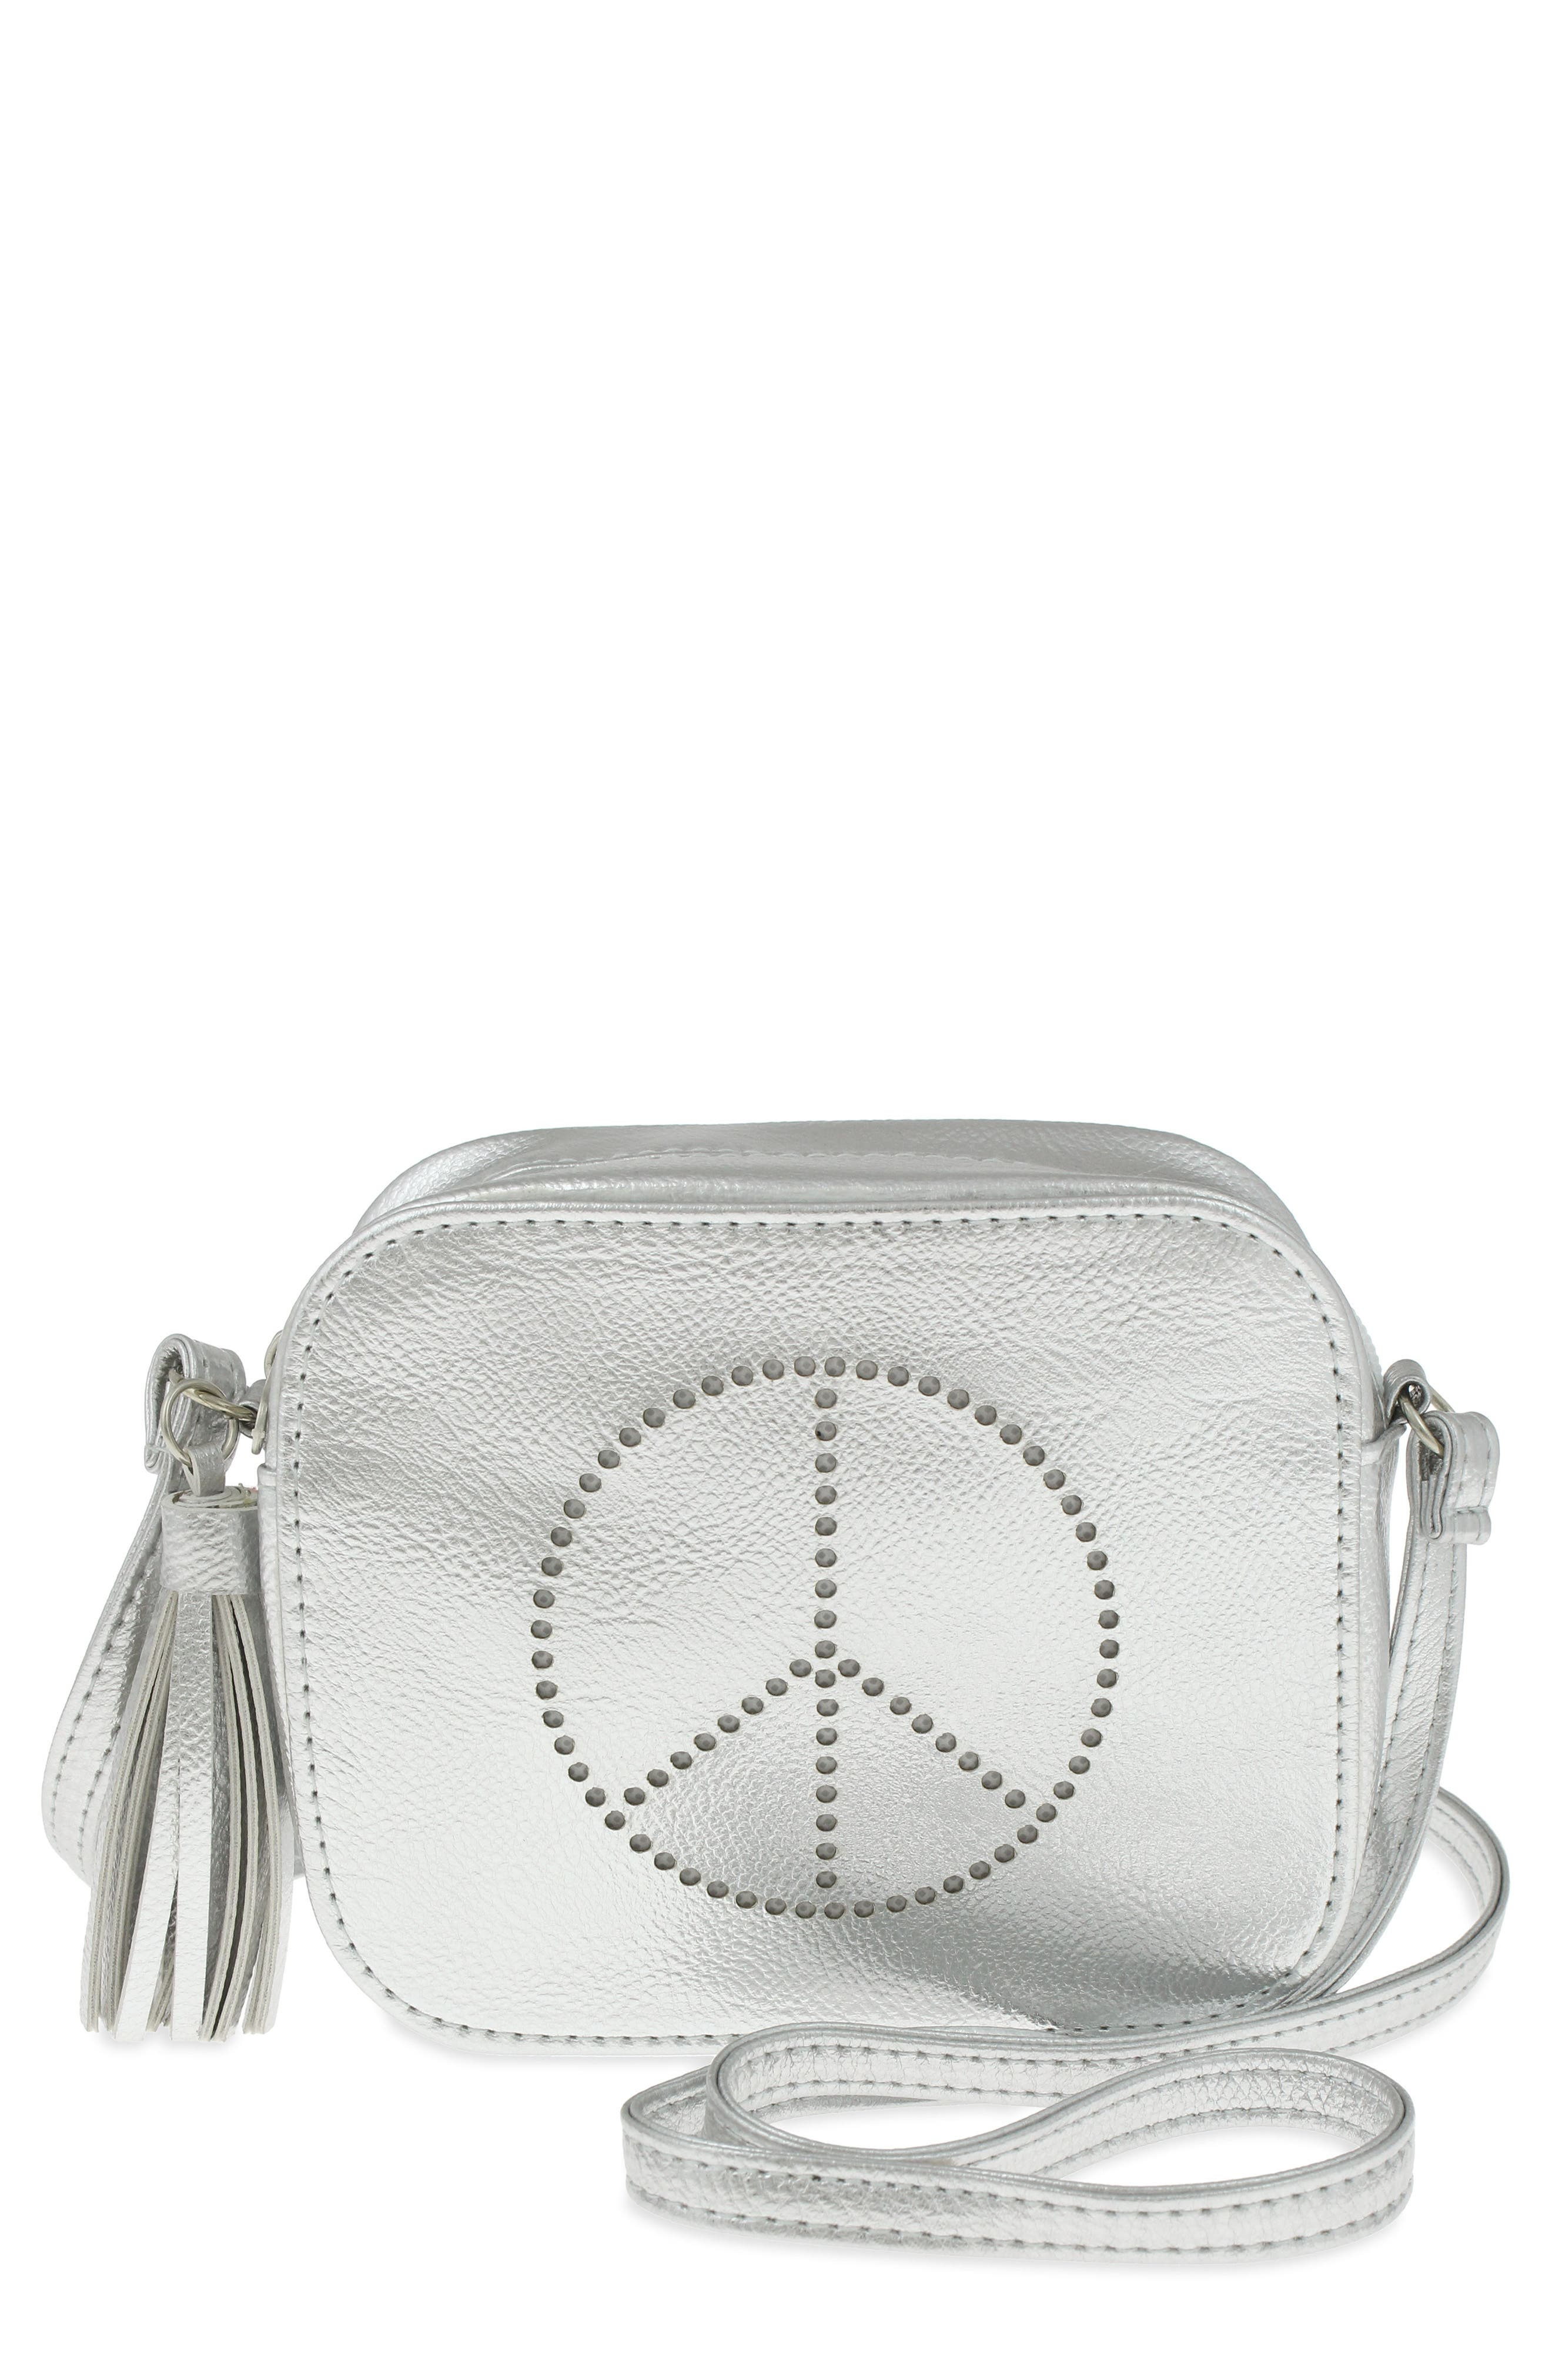 Peace Sign Faux Leather Crossbody Bag,                             Main thumbnail 1, color,                             047